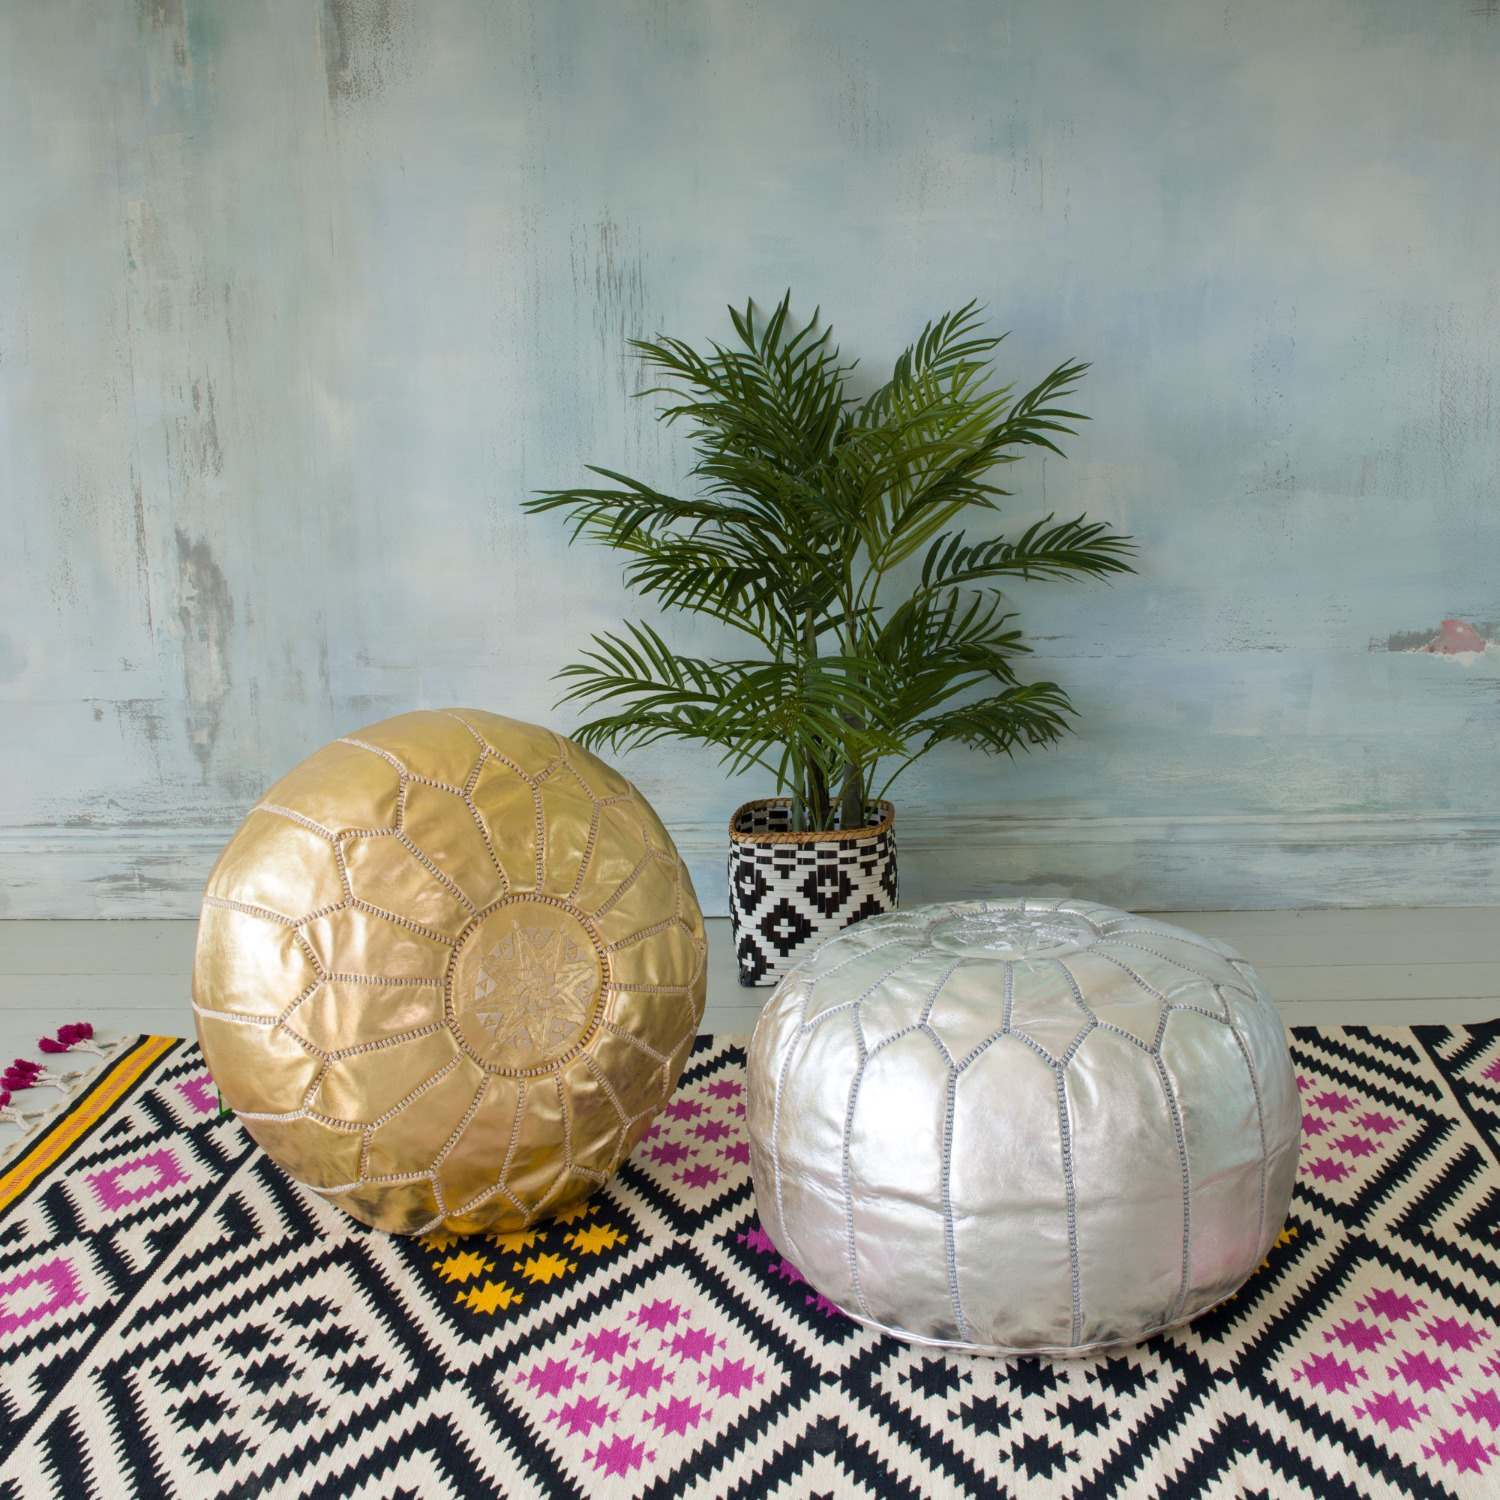 Moroccan Leather Pouf Design Sit Down Pinterest Leather Moroccan Pouffes Graham Green